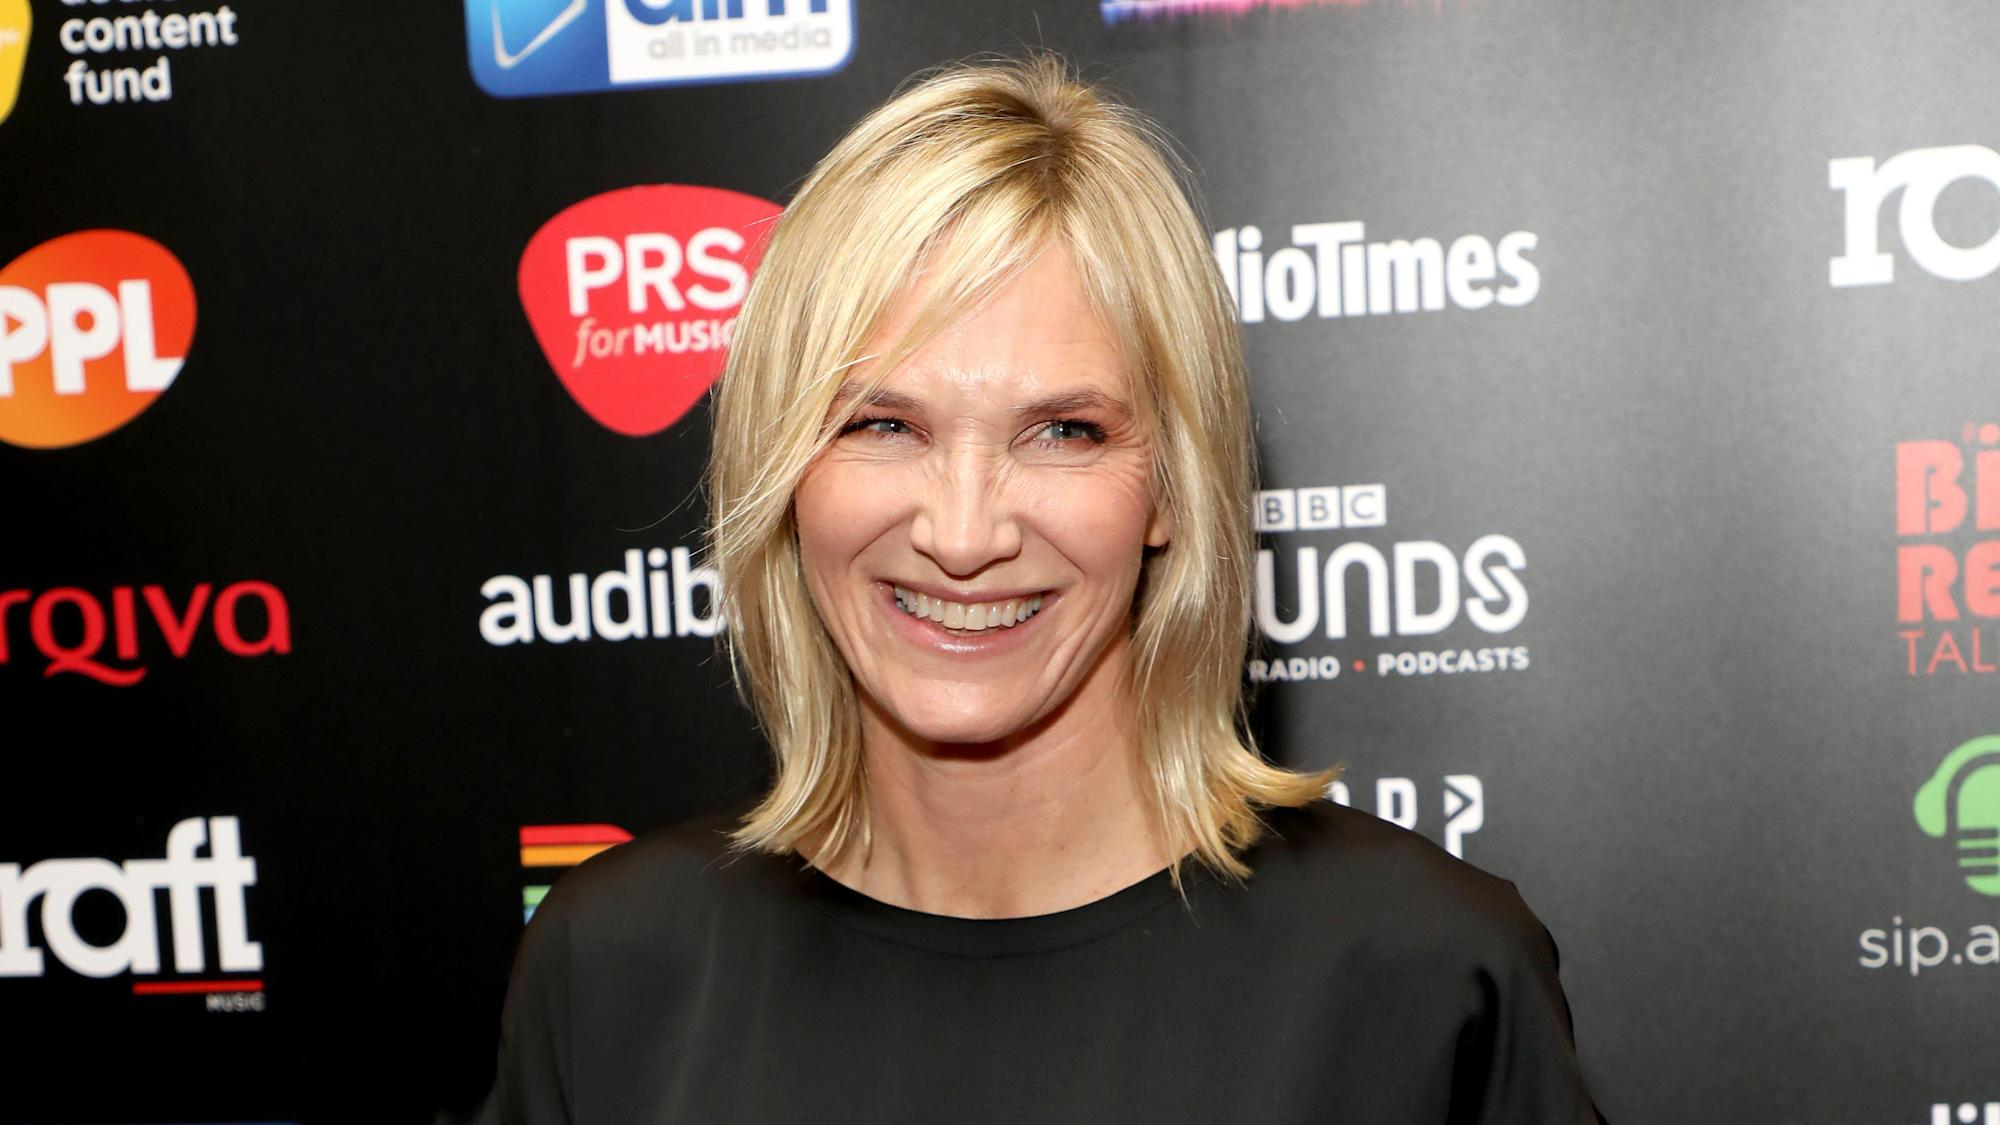 Jo Whiley offers update on sister Frances following positive coronavirus test